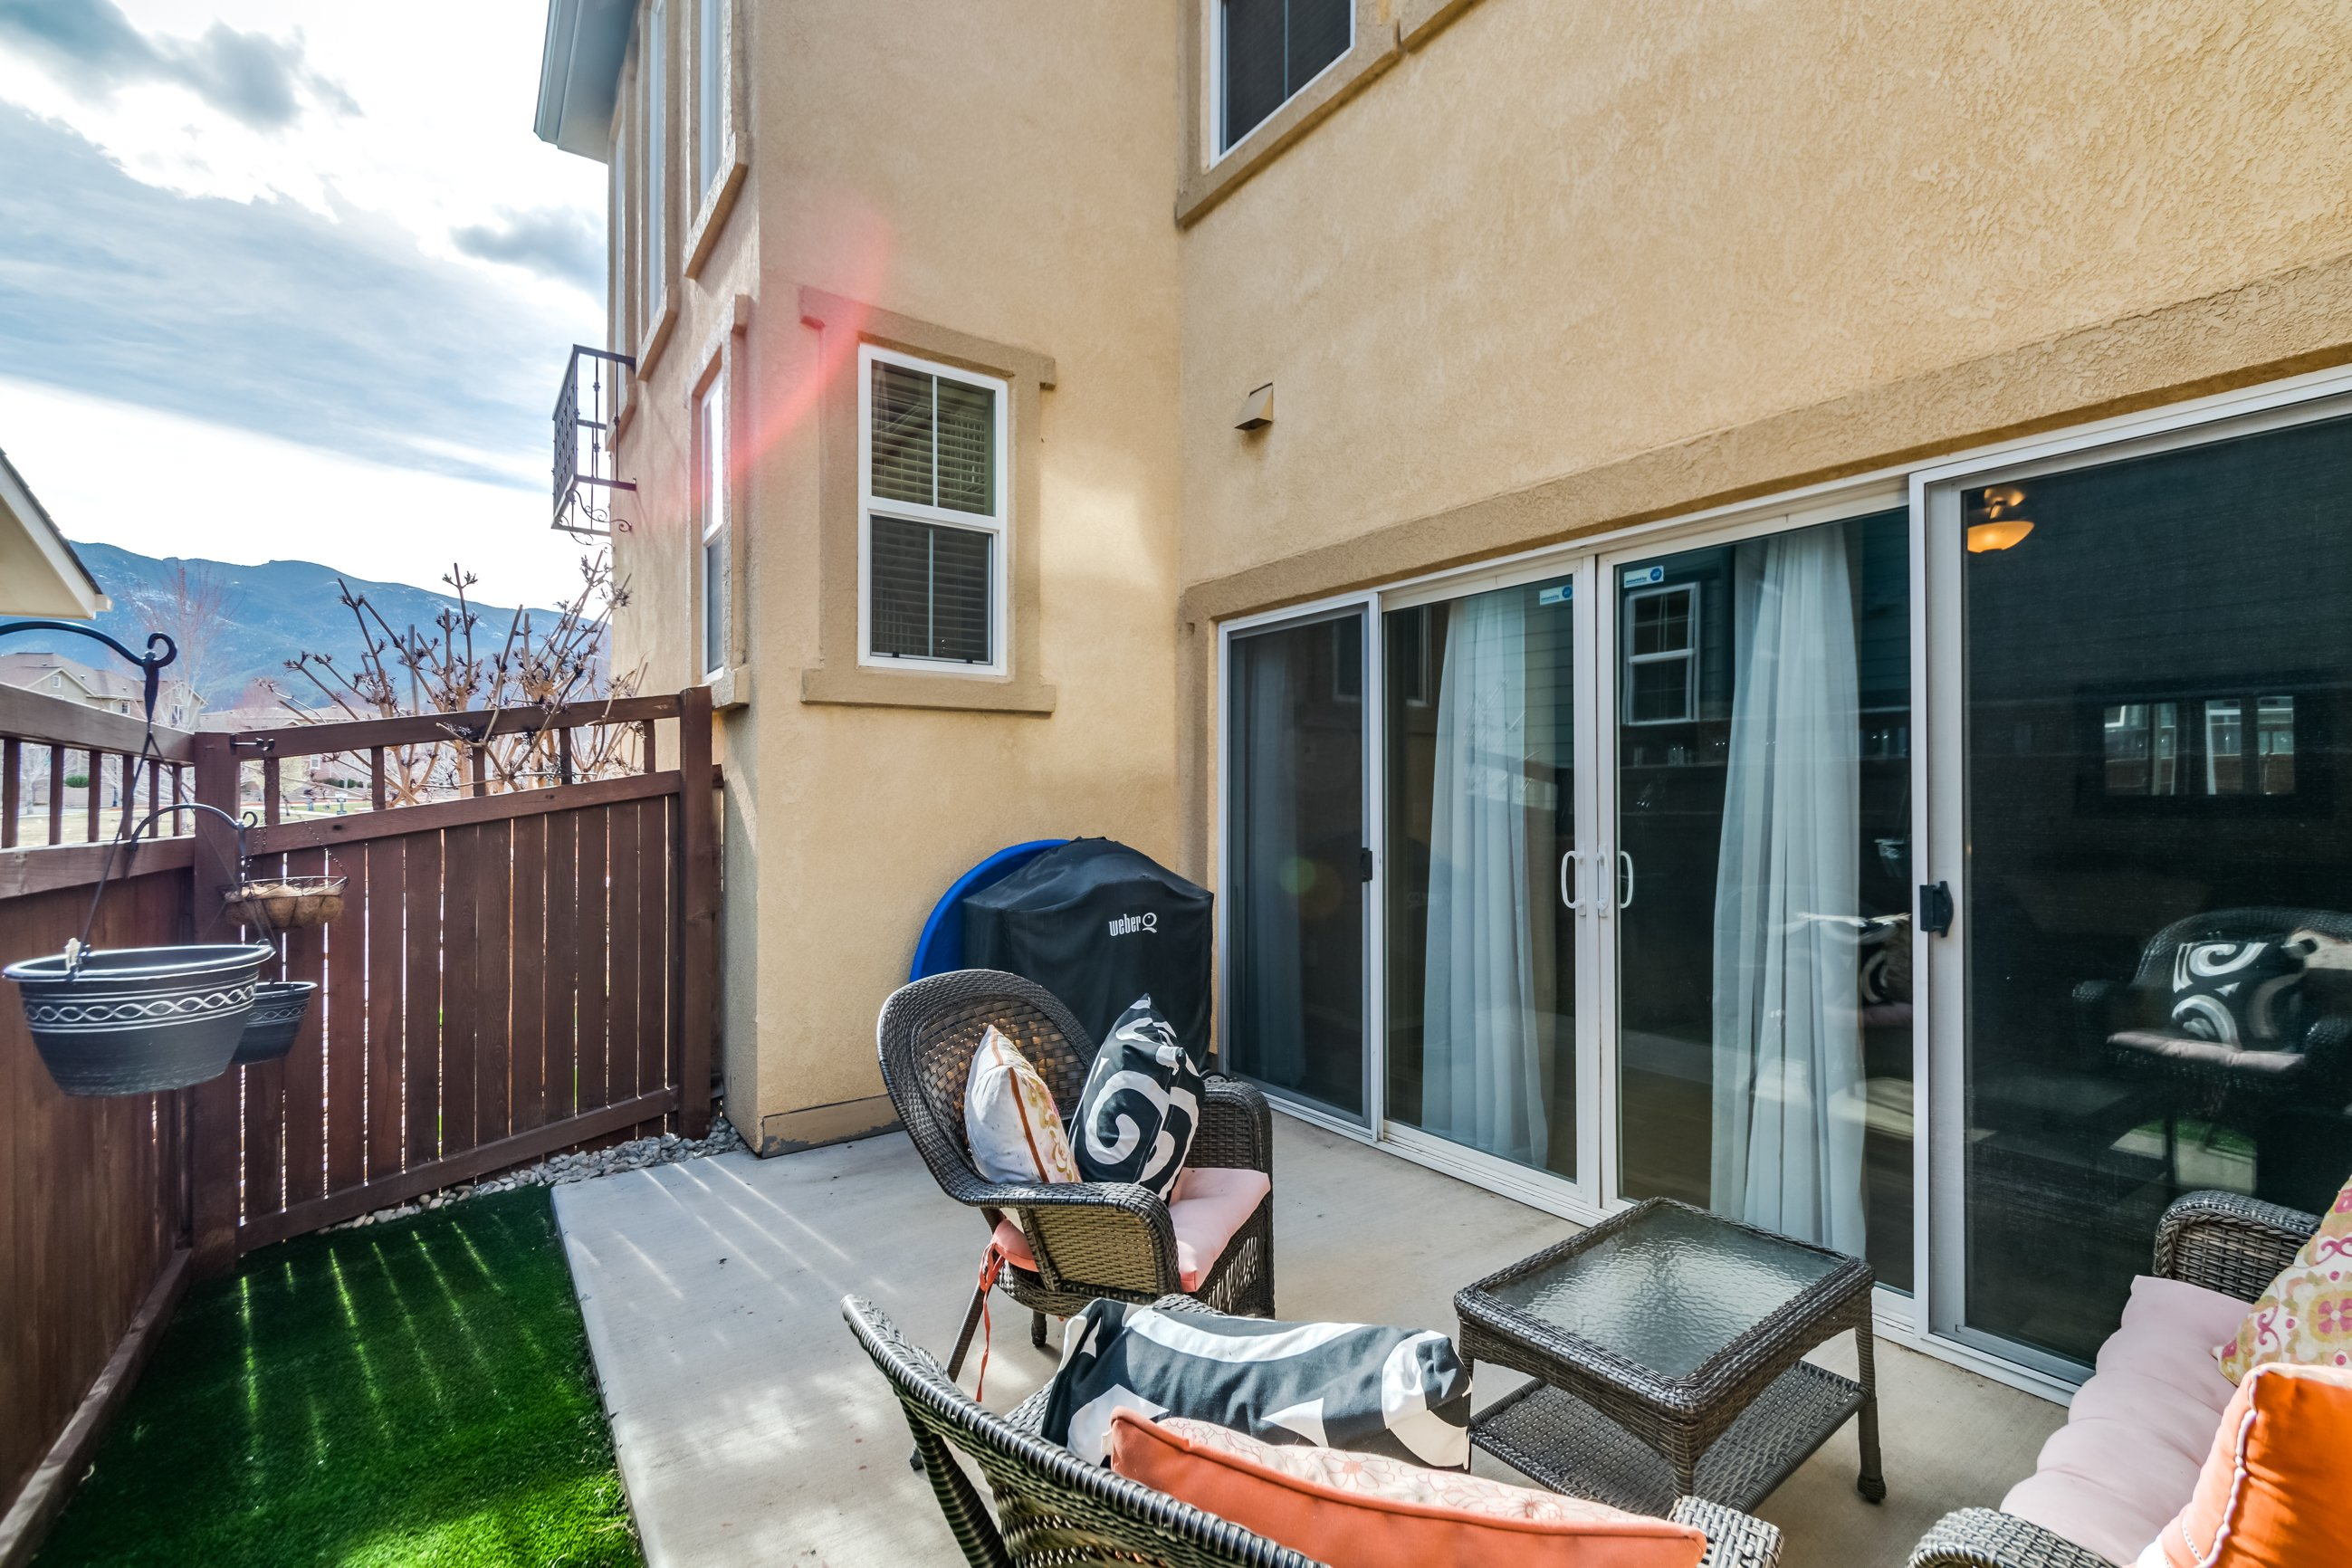 Gold hill mesa home for sale, picture of outdoor patio and yard